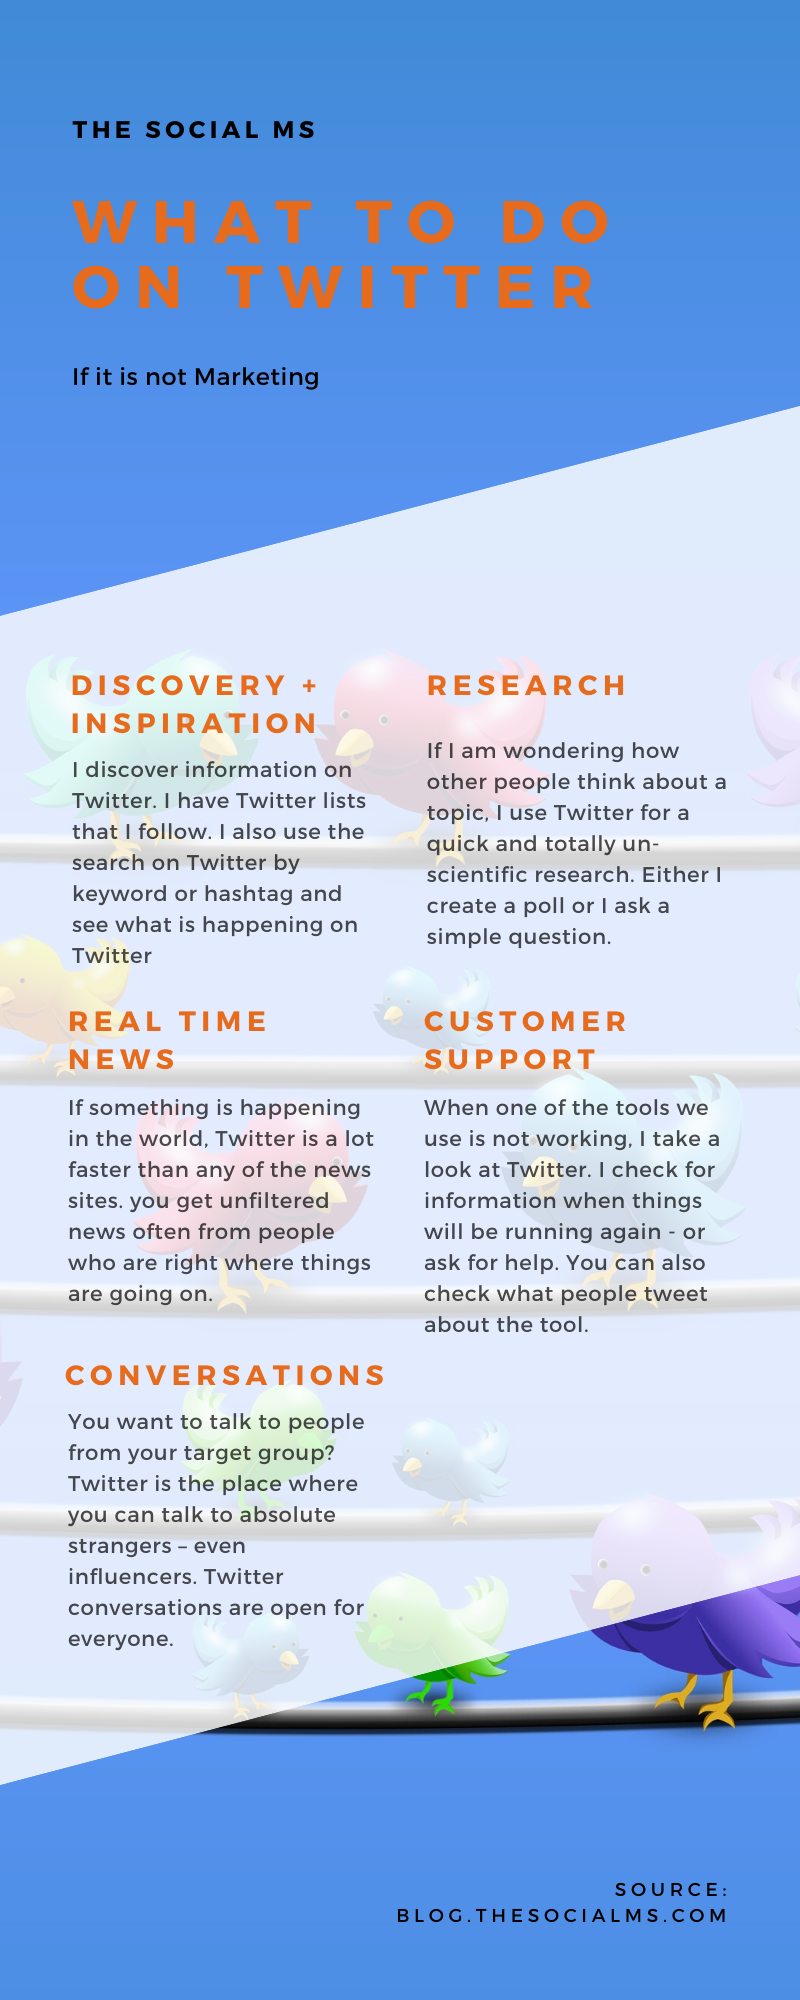 there is so much that Twitter can do for you, and most of it is totally unrelated to the number of your followers or the influence of your account. Here are my ideas to use Twitter that are not marketing but still awesome. #twitter #twittermarketing #twittertips #twitterstrategy #socialmedia #socialmediatips #socialmediastrategy Here